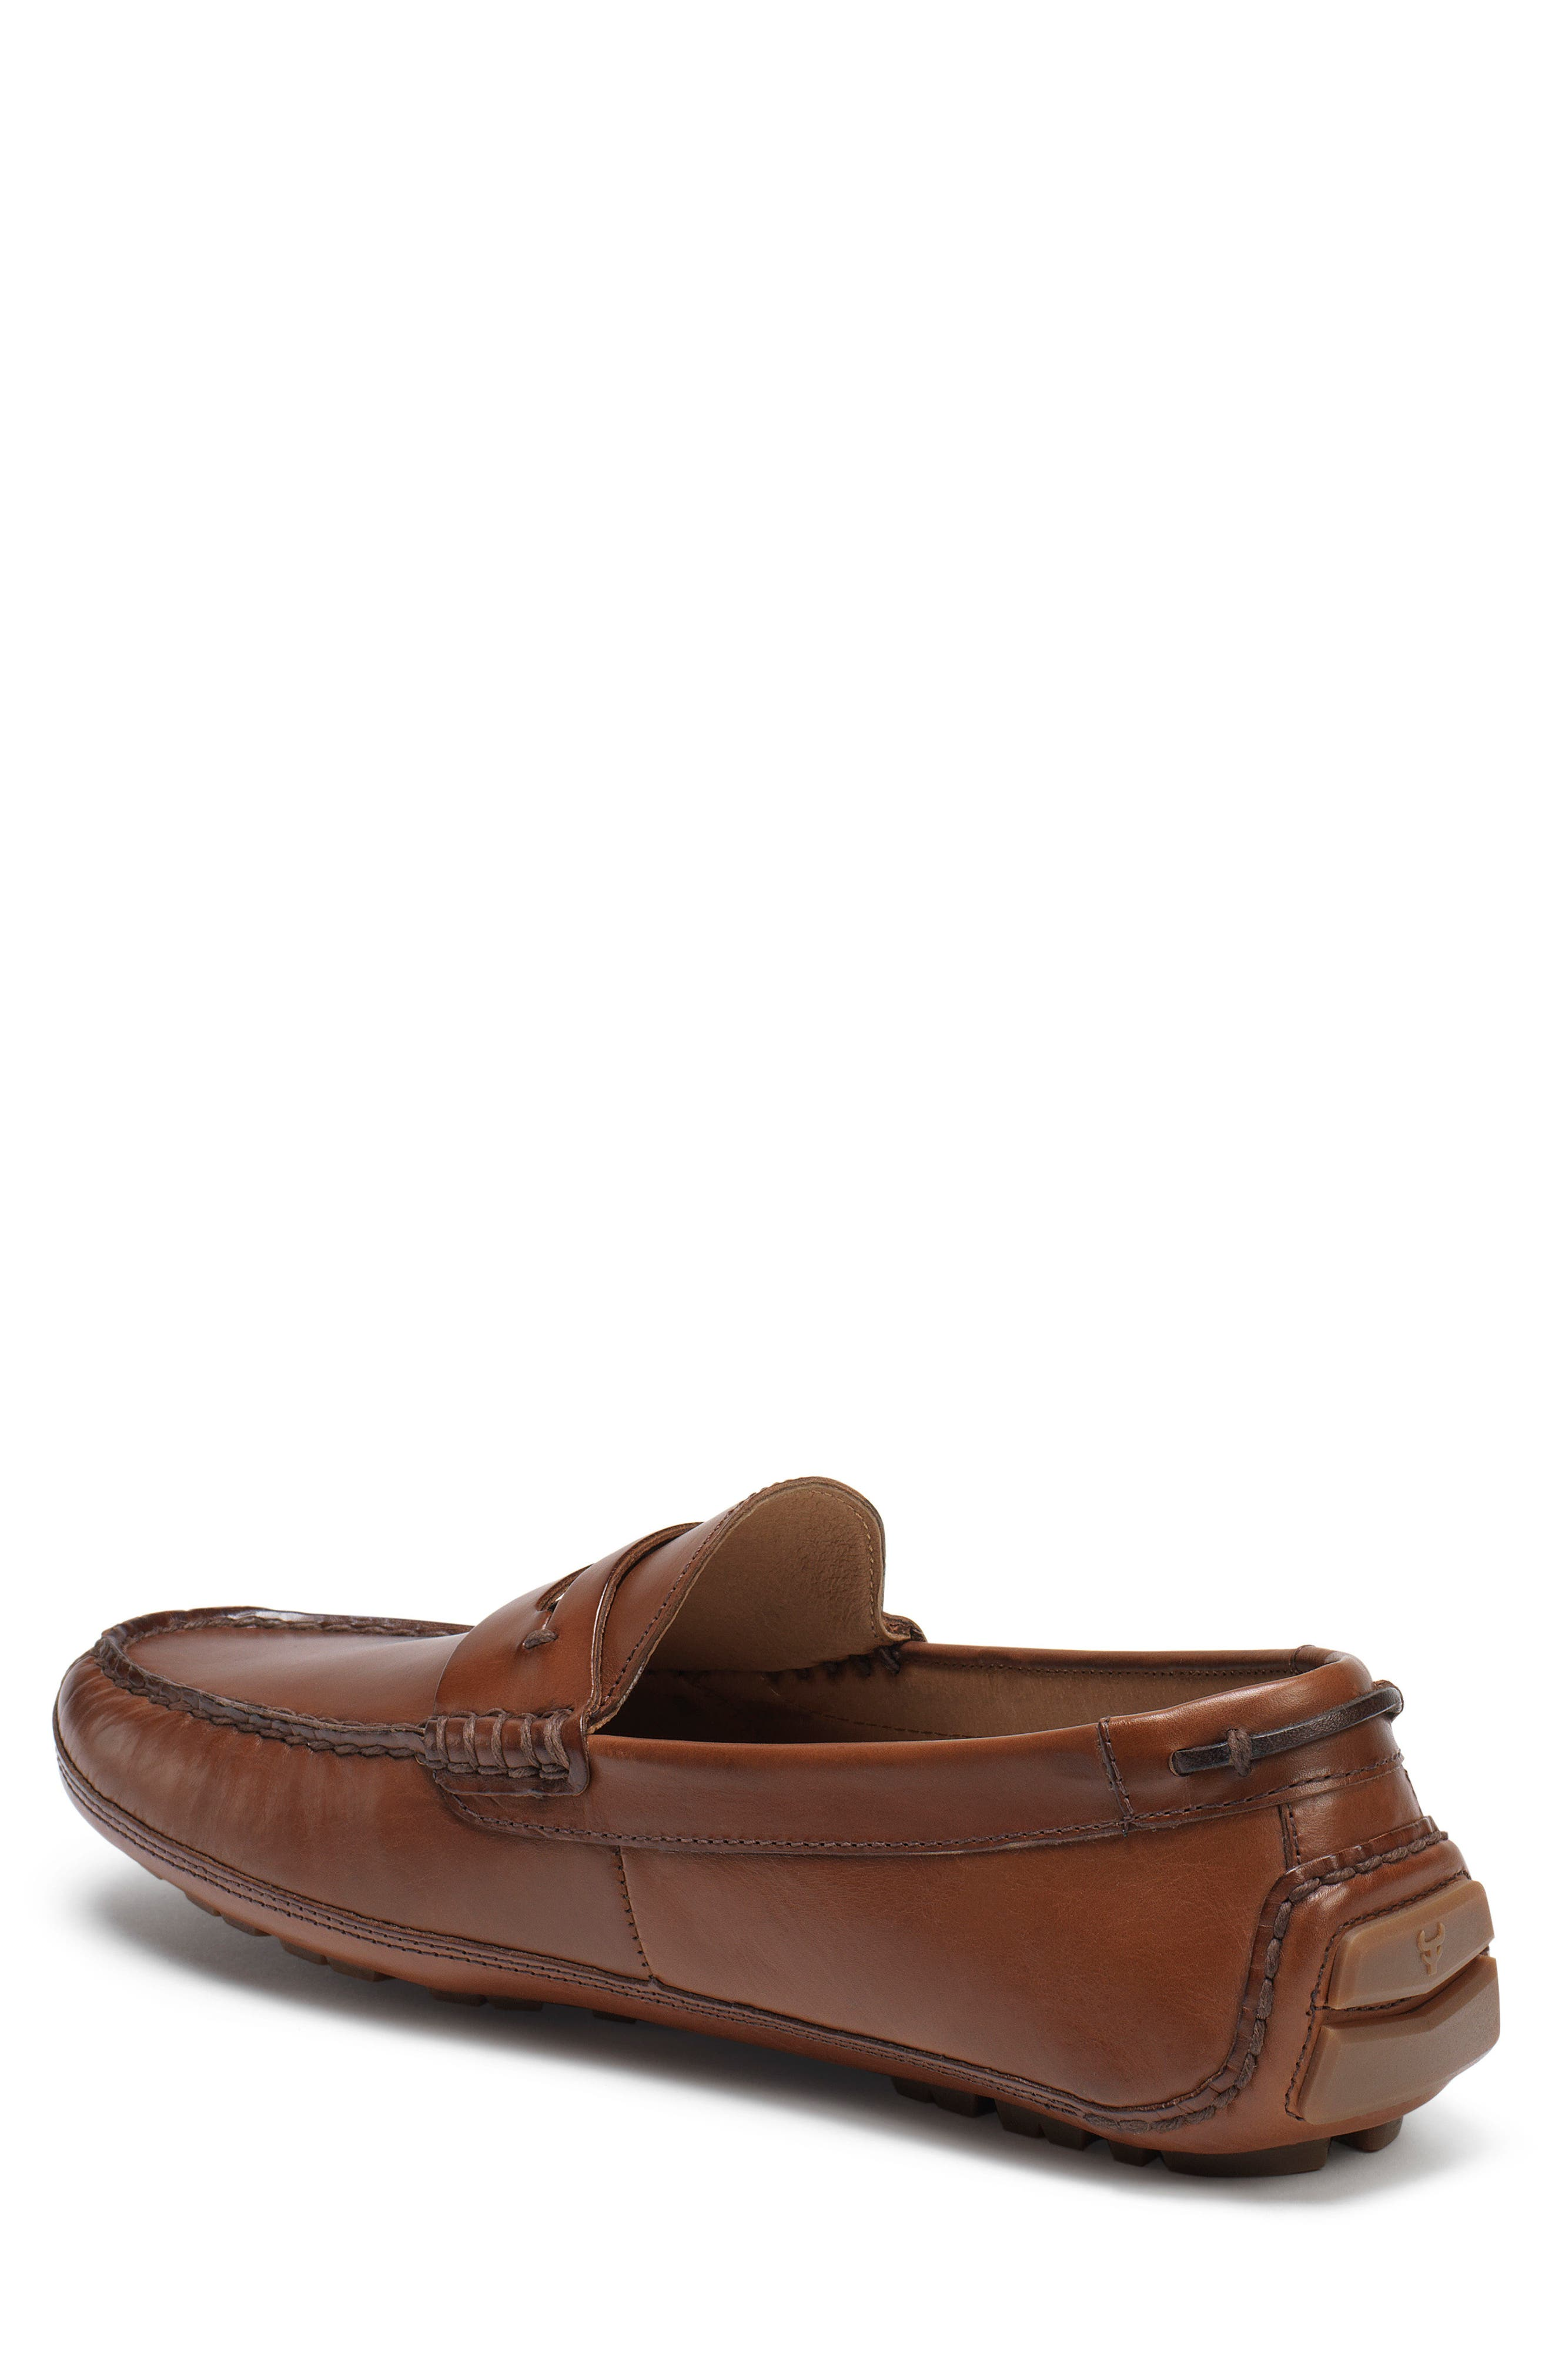 Dawson Water Resistant Driving Loafer,                             Alternate thumbnail 2, color,                             Light Brown Leather